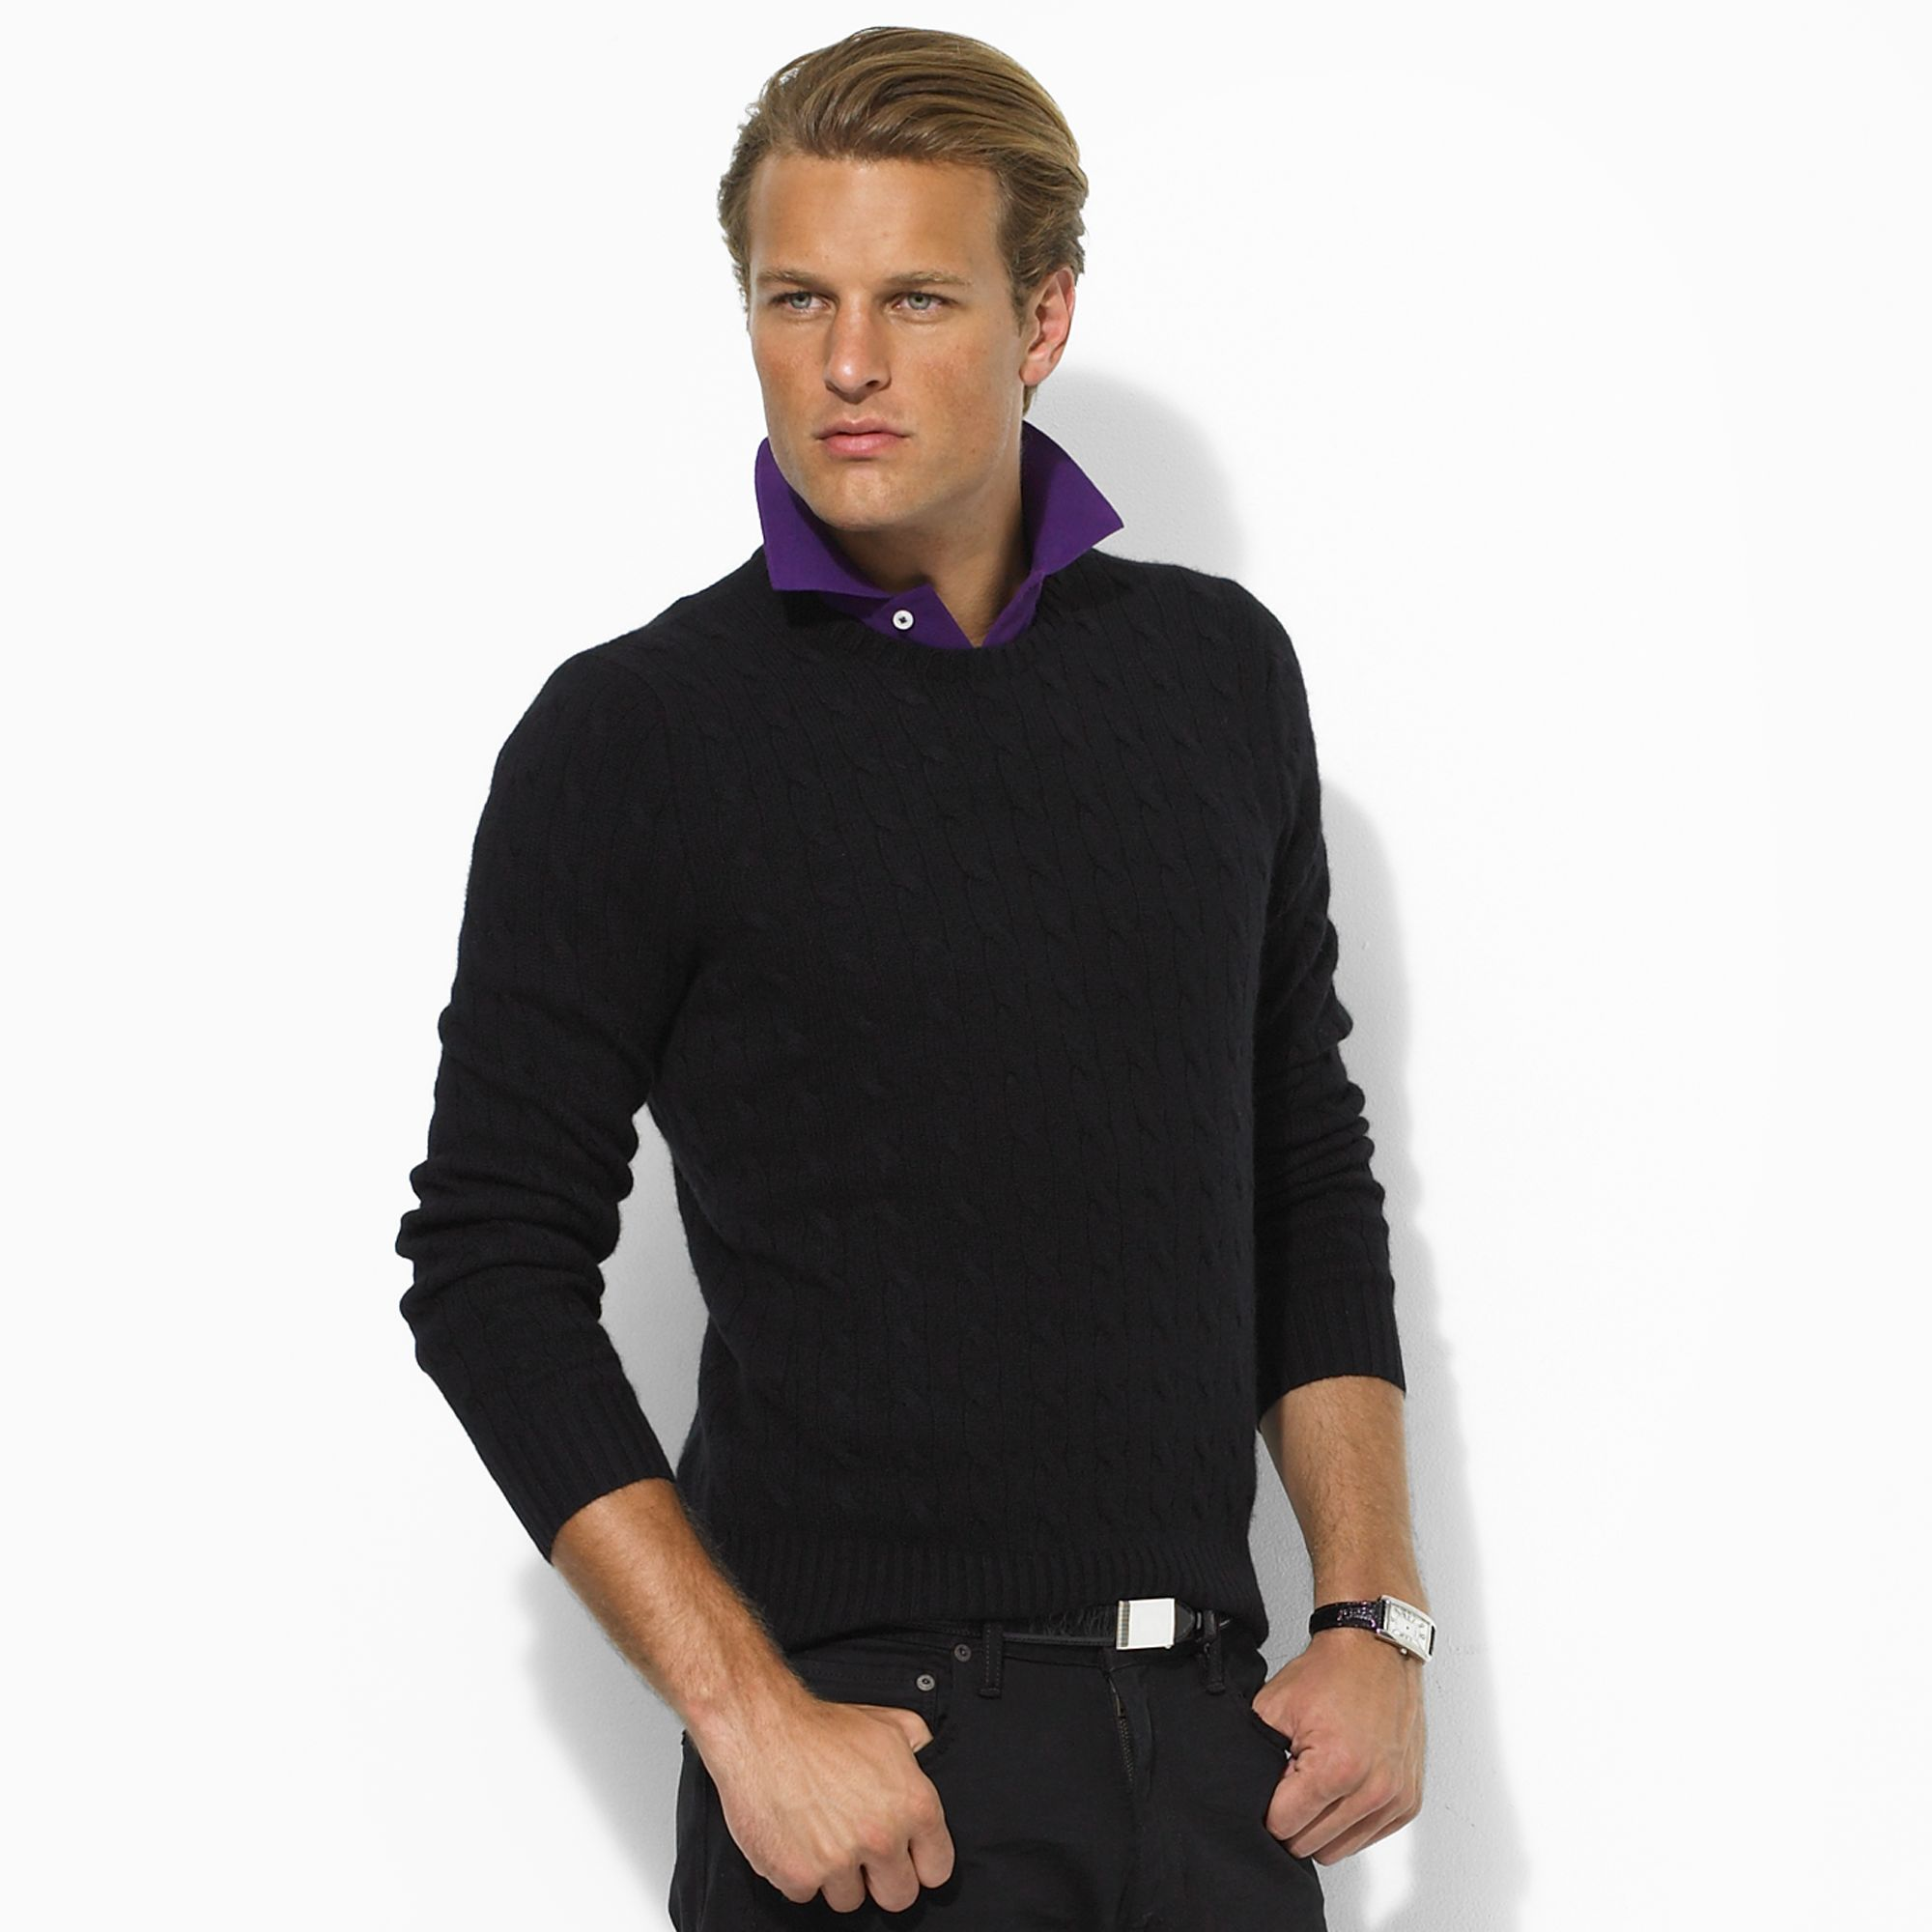 Ralph Lauren Latest Fall Winter Coats and Western Dresses Sweaters Collection for Men and Women 2014-2015 (23)